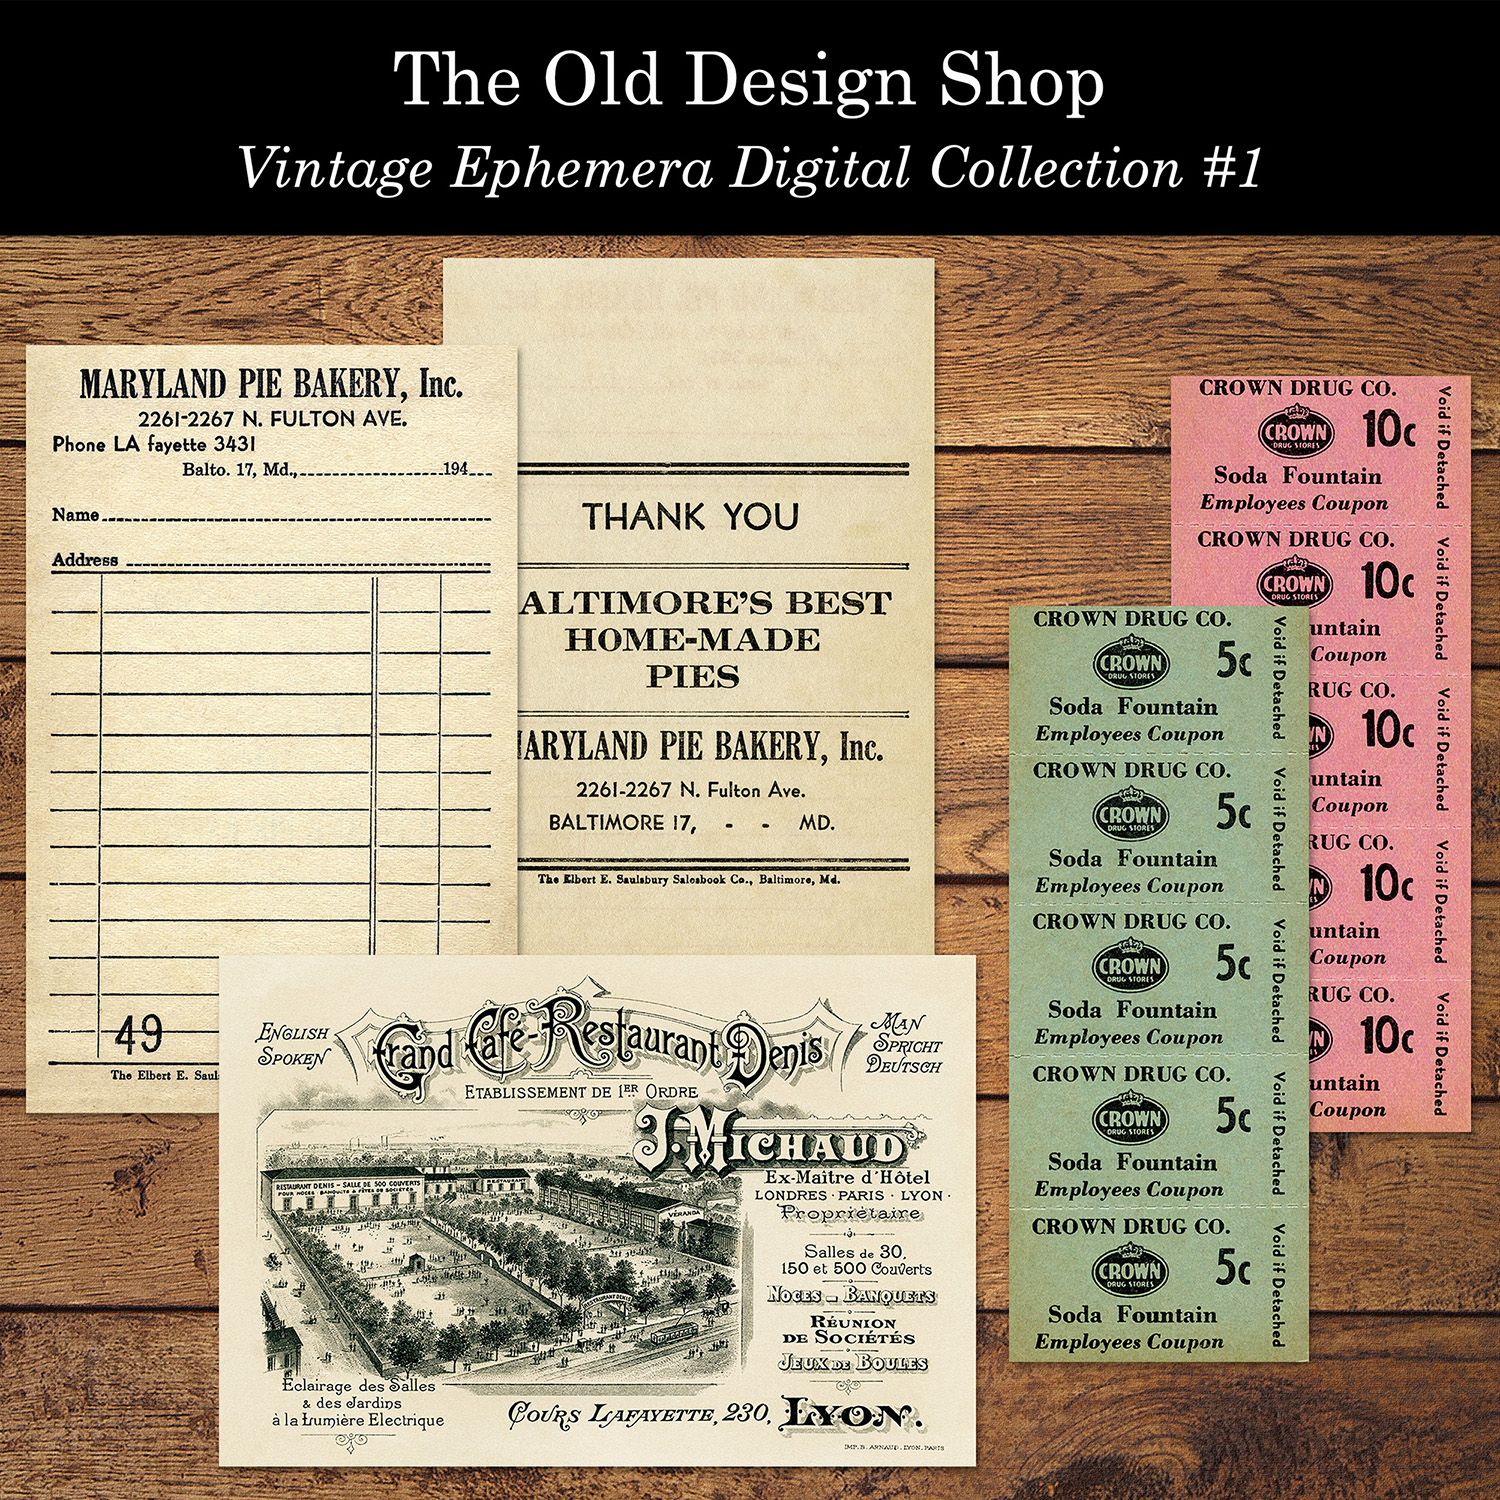 vintage ephemera digital collection old design shop